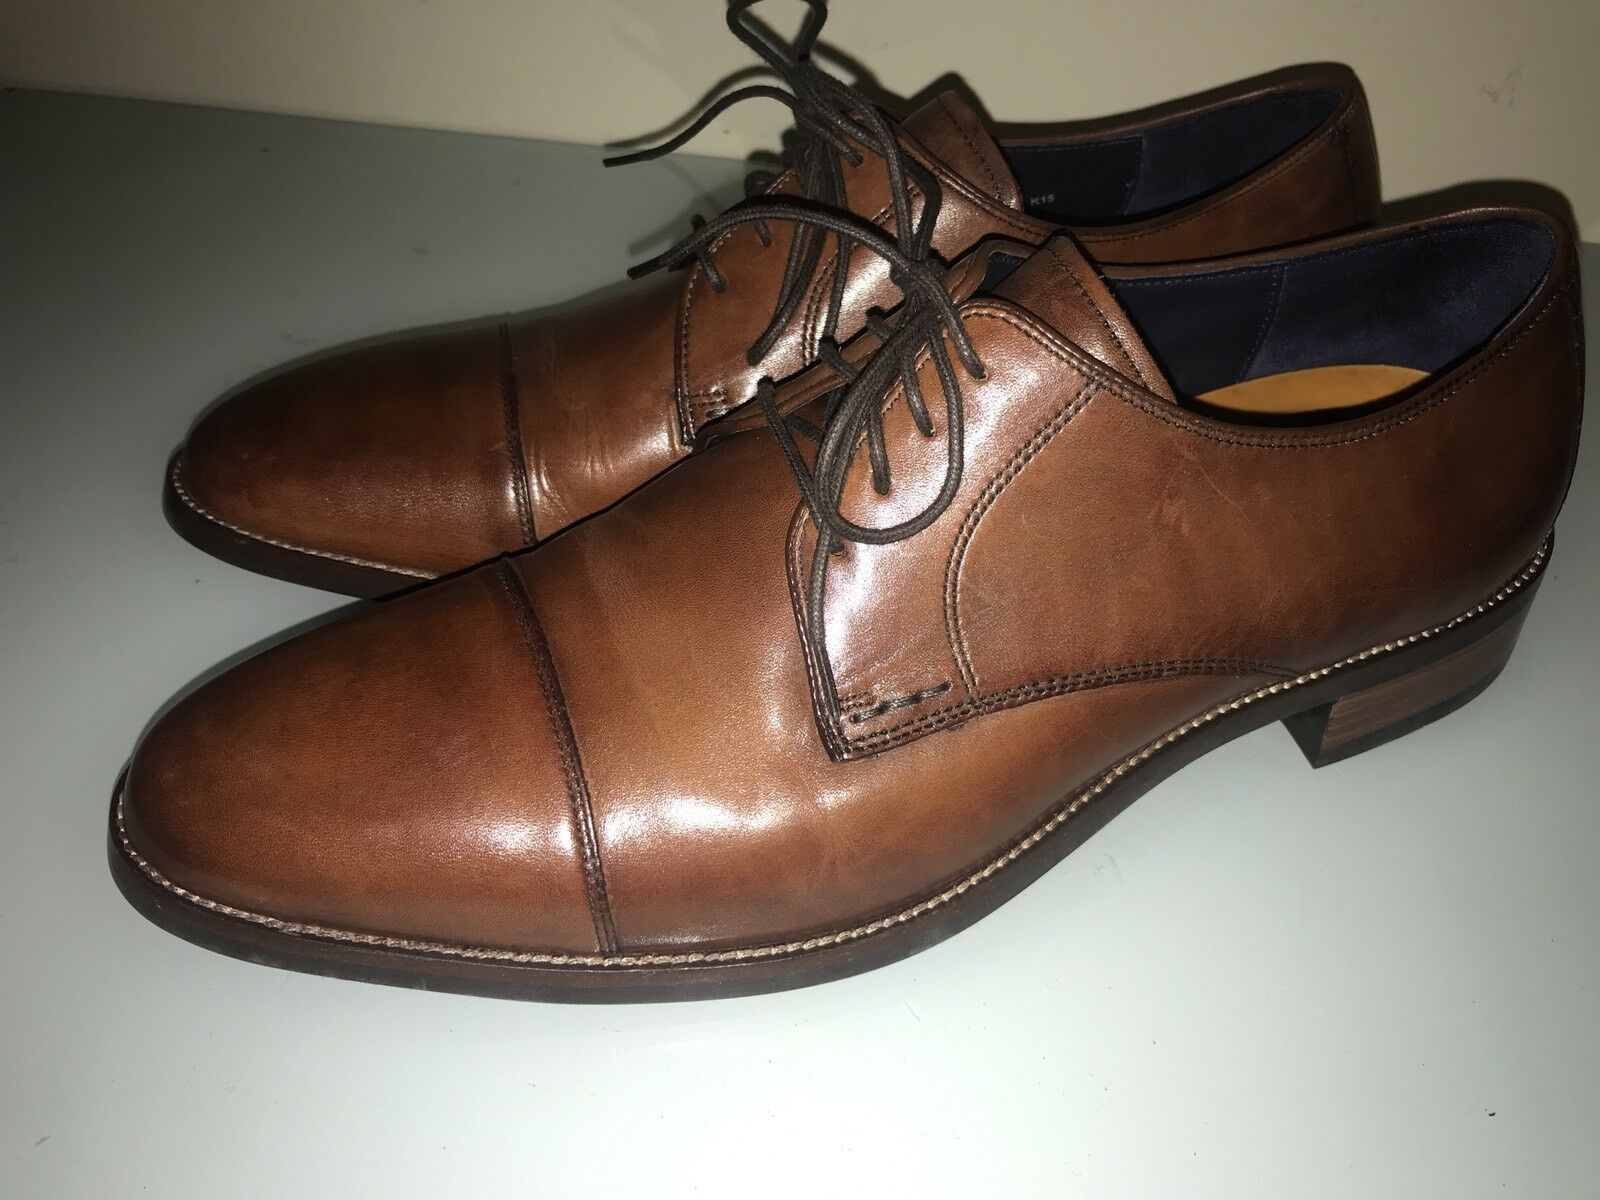 Cole Haan Lenox Hill Cap Ox Mens Leather Oxford US 13 M Brown Oxford C11632